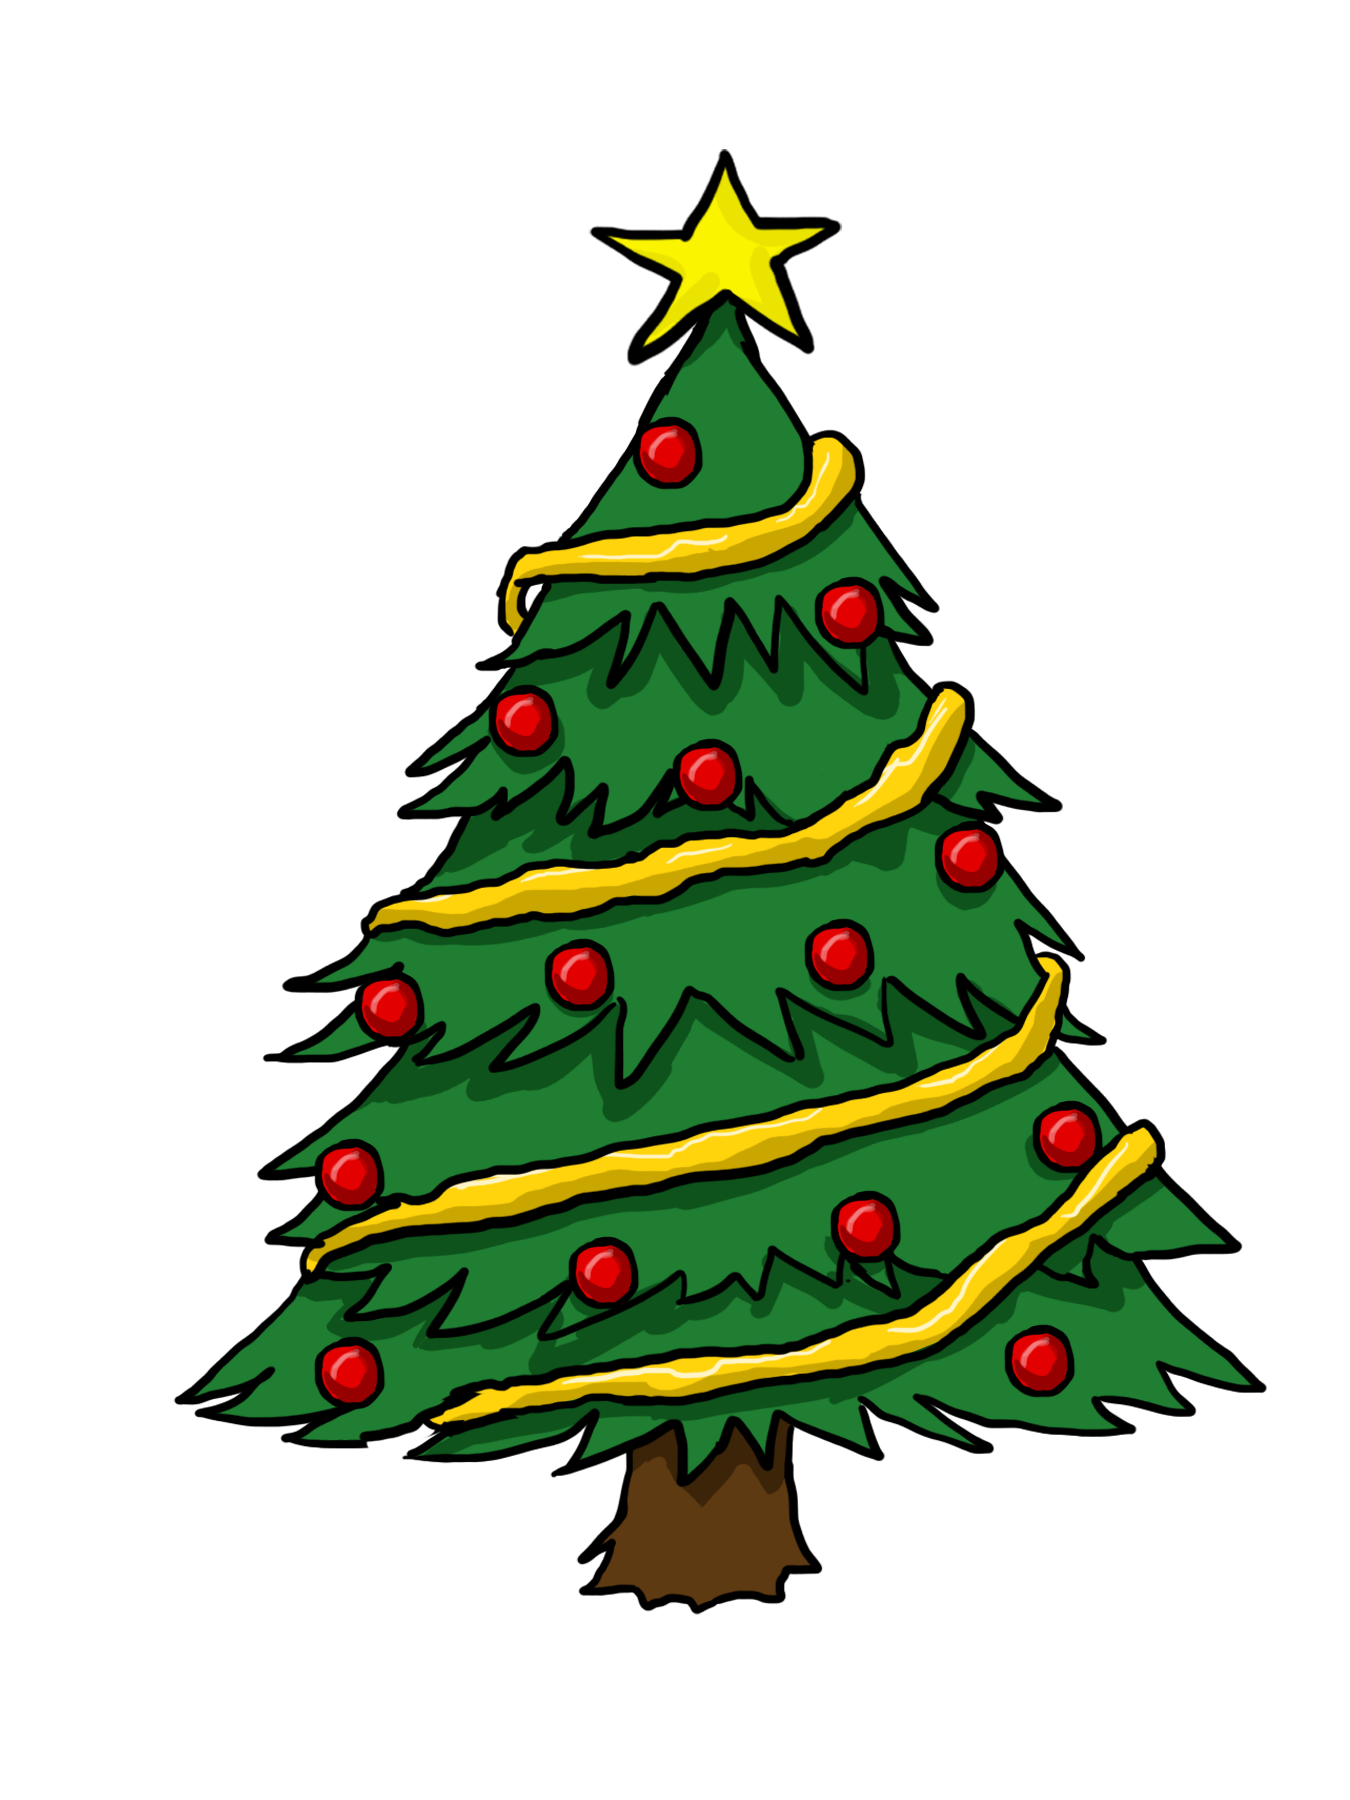 Christmas Day clipart - Christmas Tree Pictures Clip Art